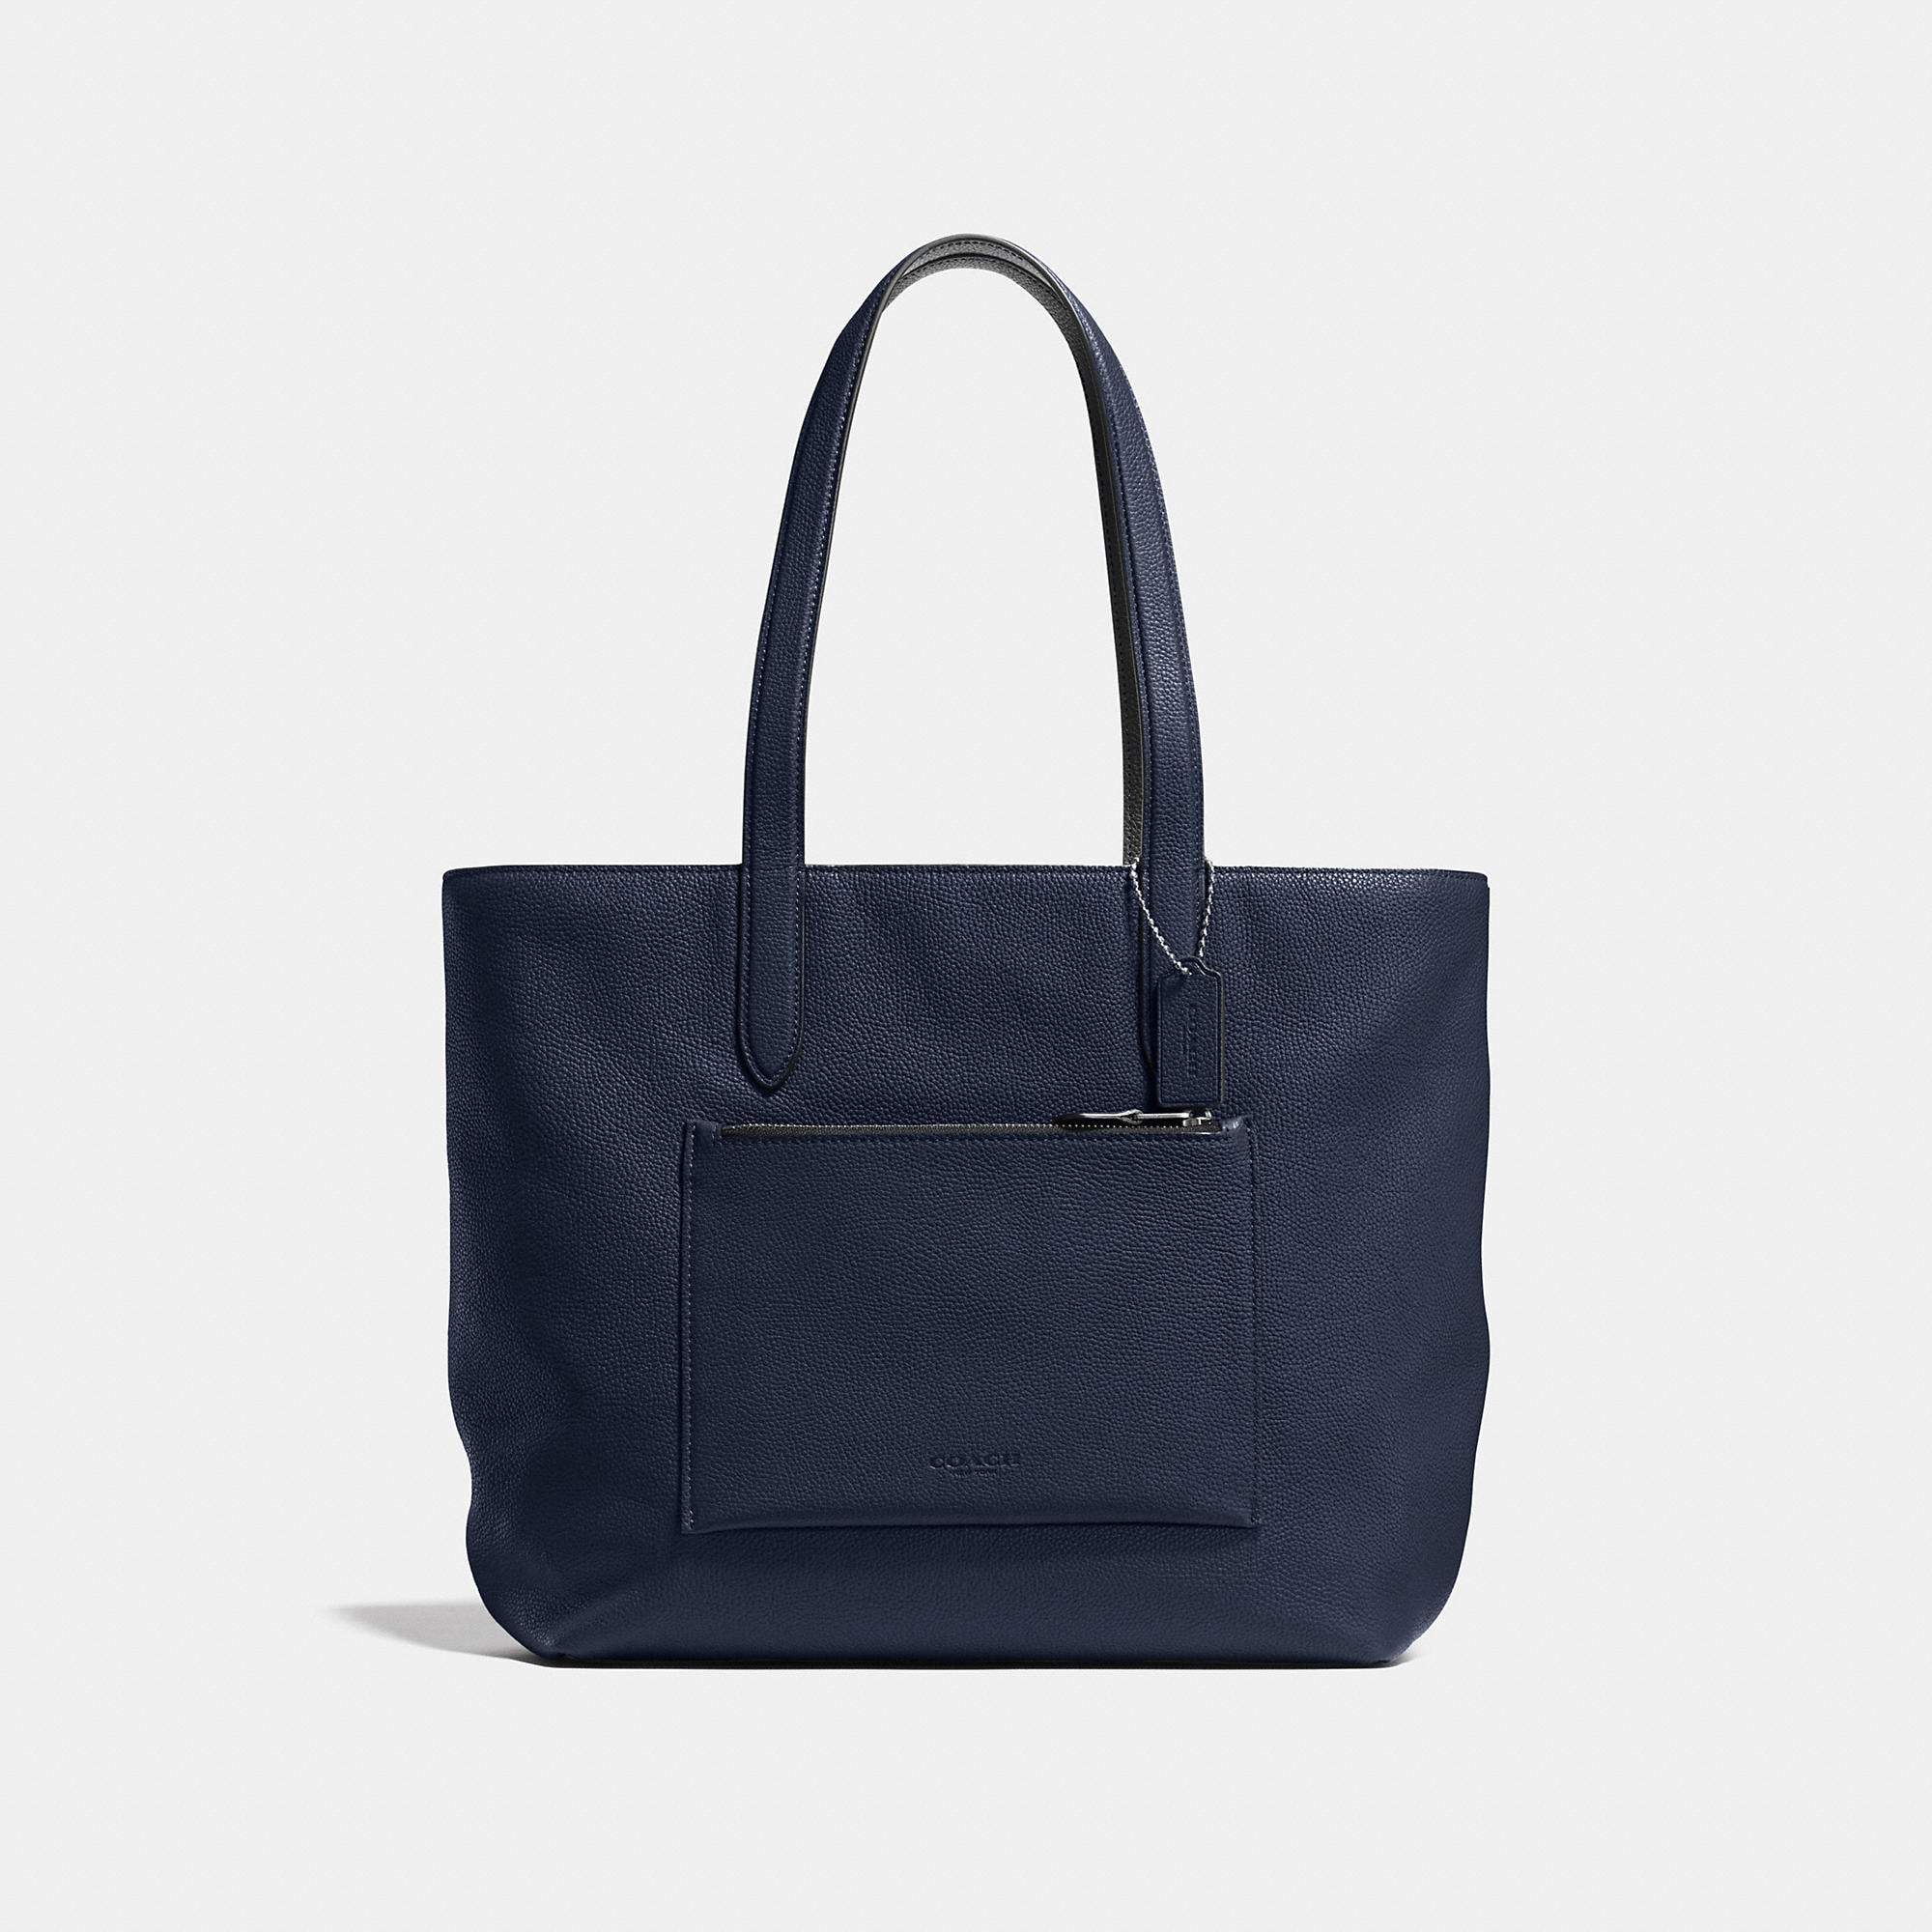 Coach Metropolitan Soft Tote In Pebble Leather